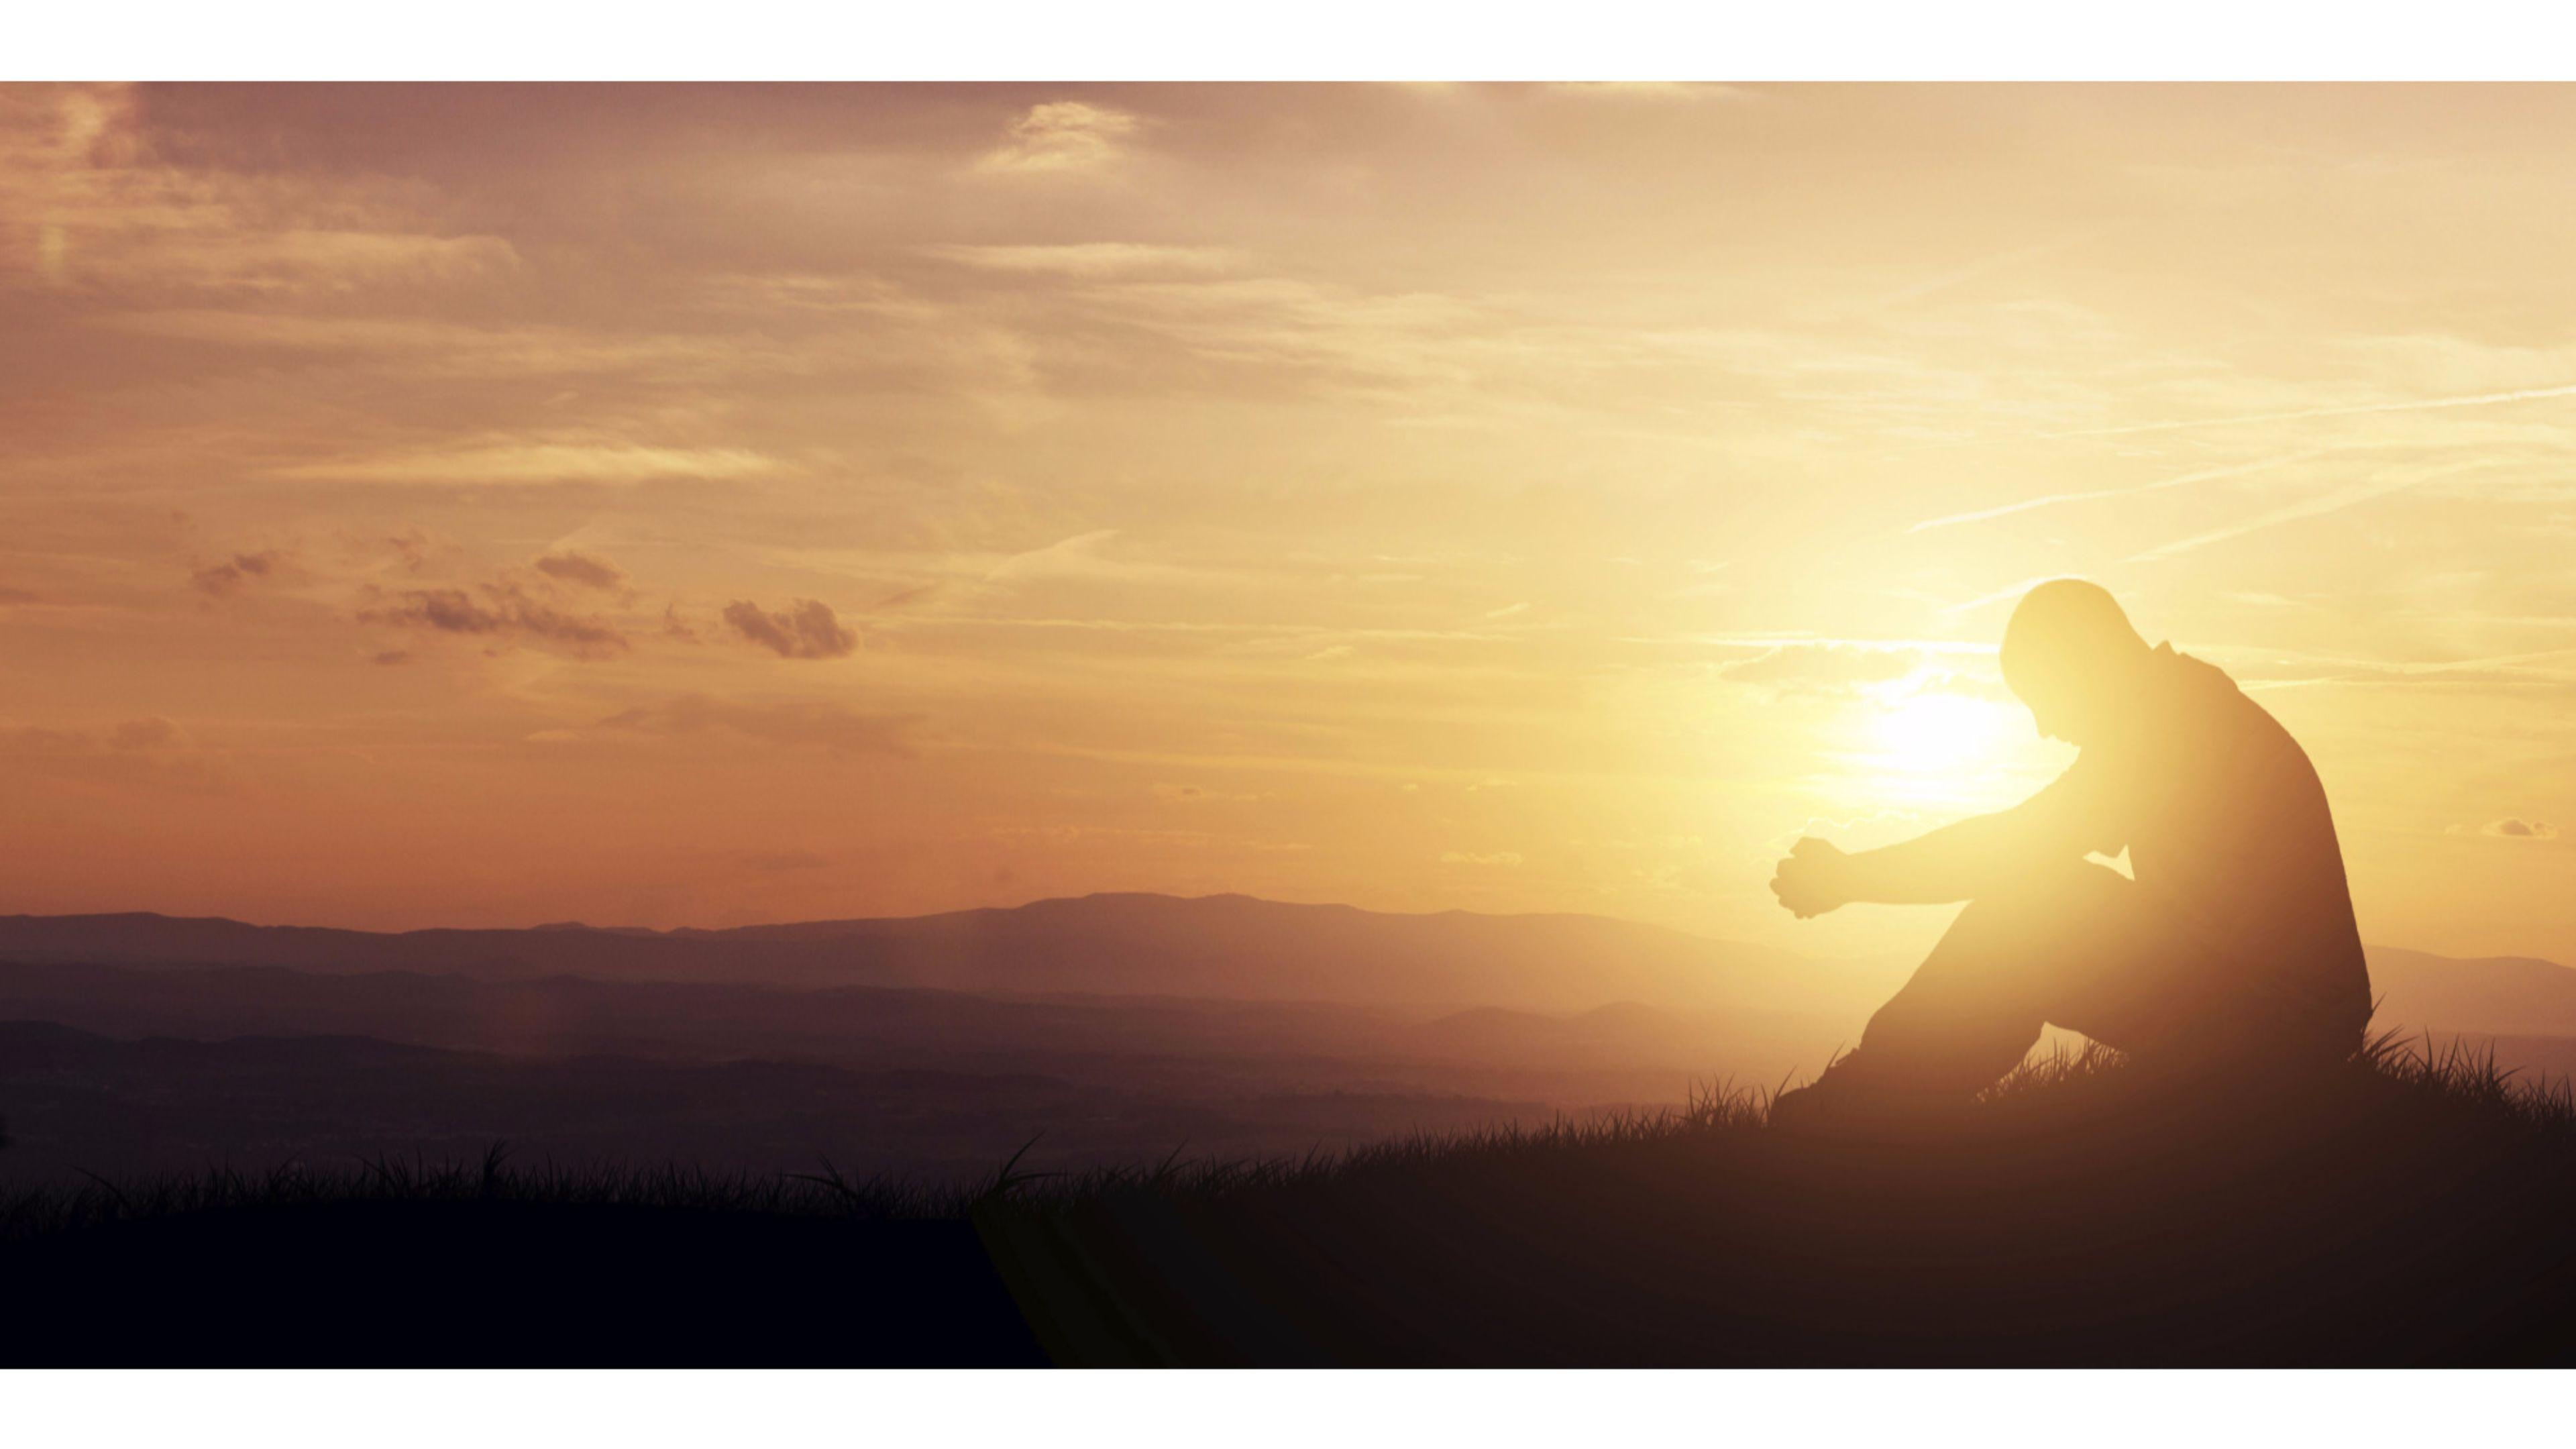 Beautiful Sunset Praying Religious 4K Wallpapers